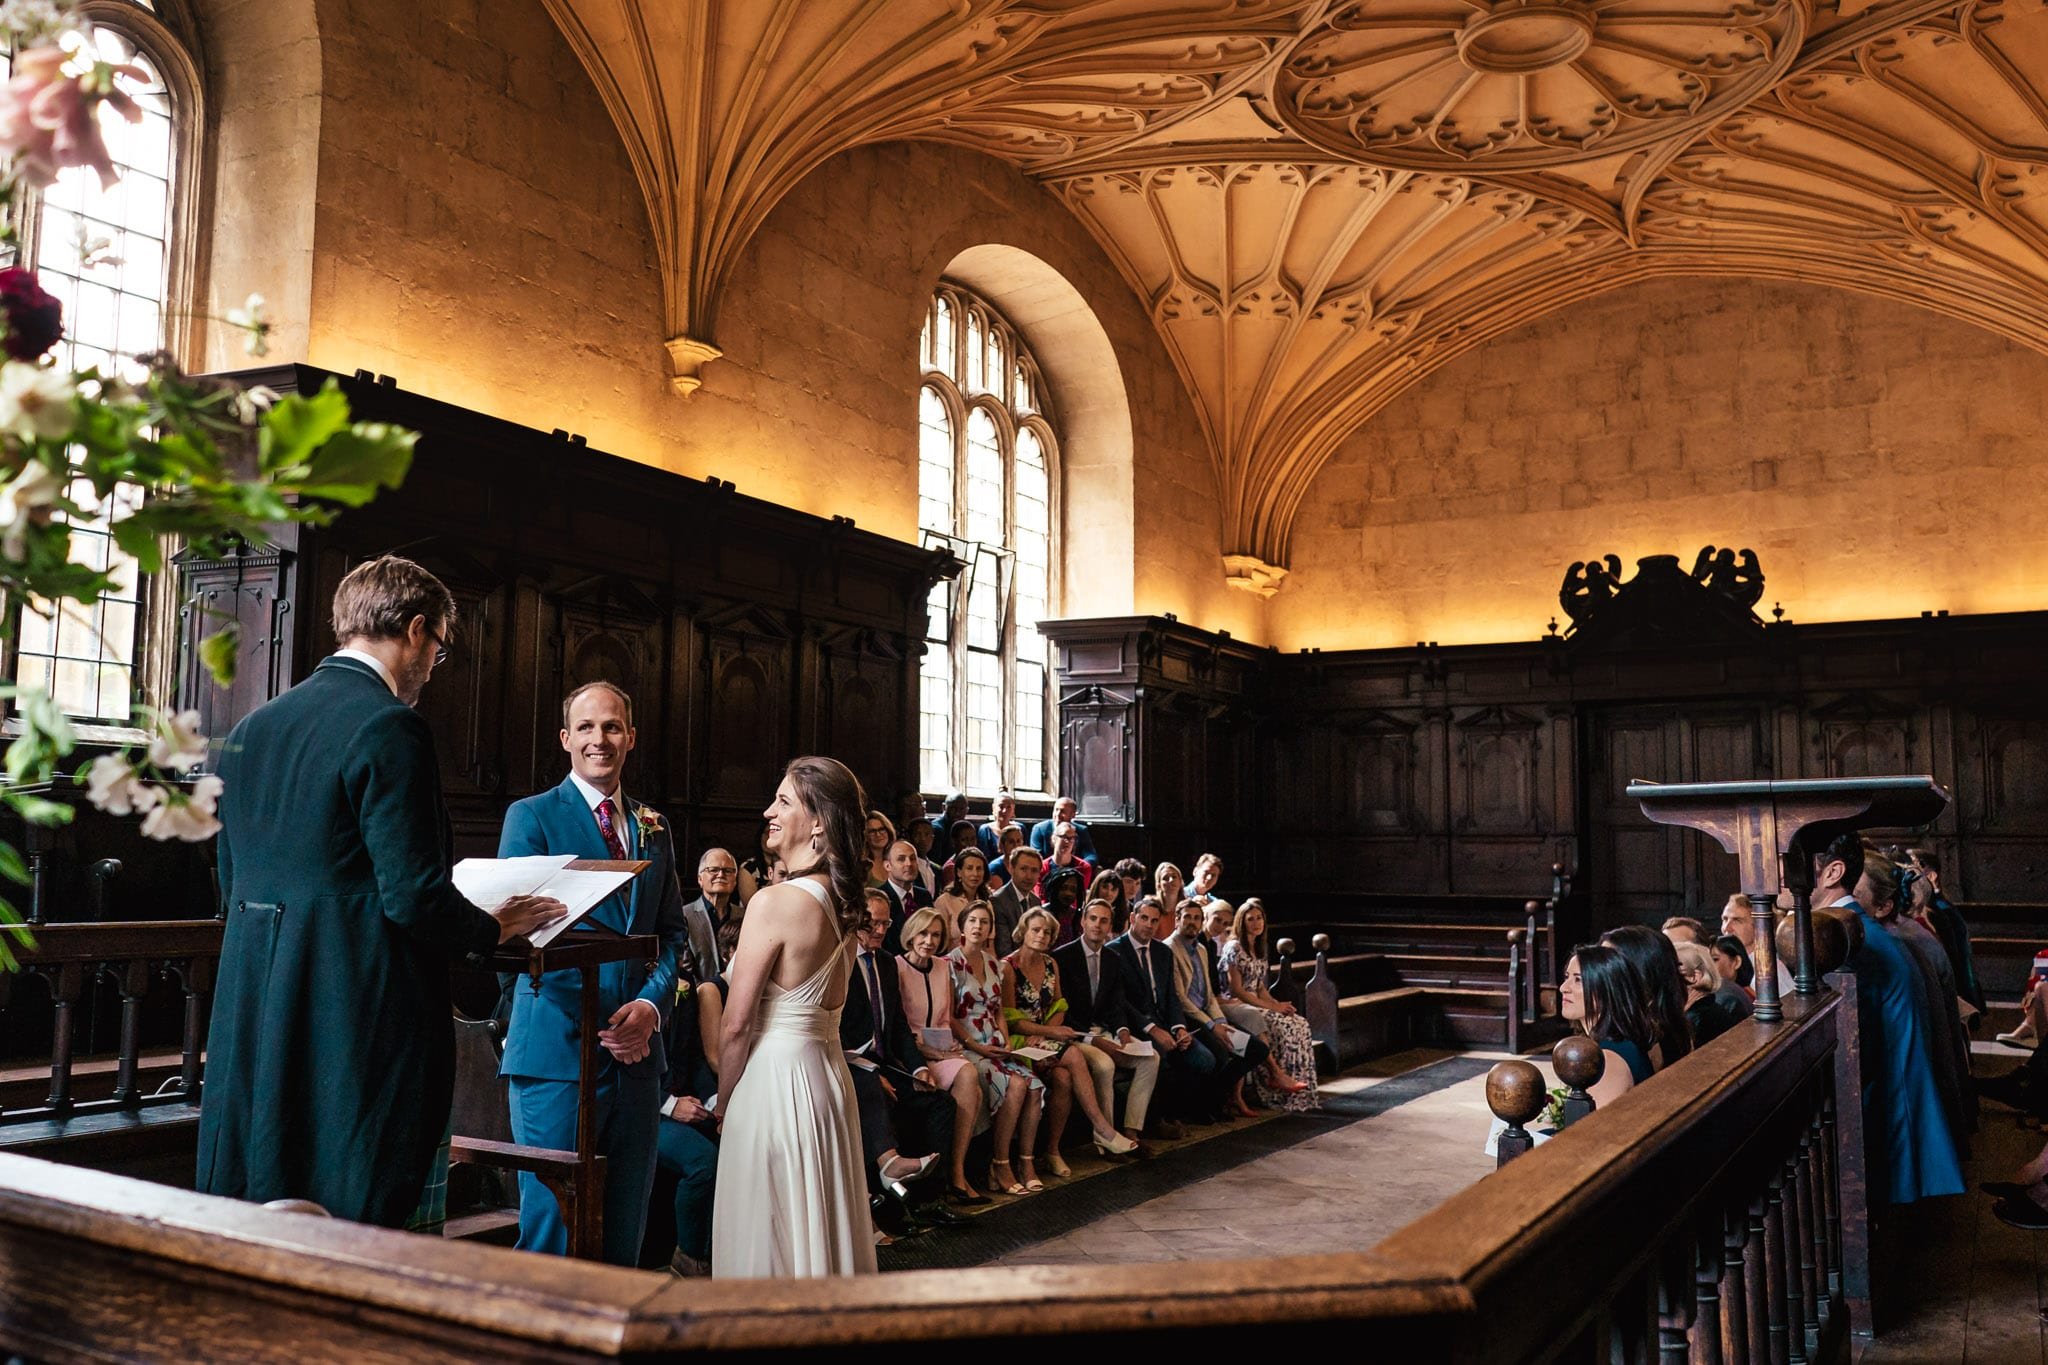 Convocation House wedding ceremony in Oxford